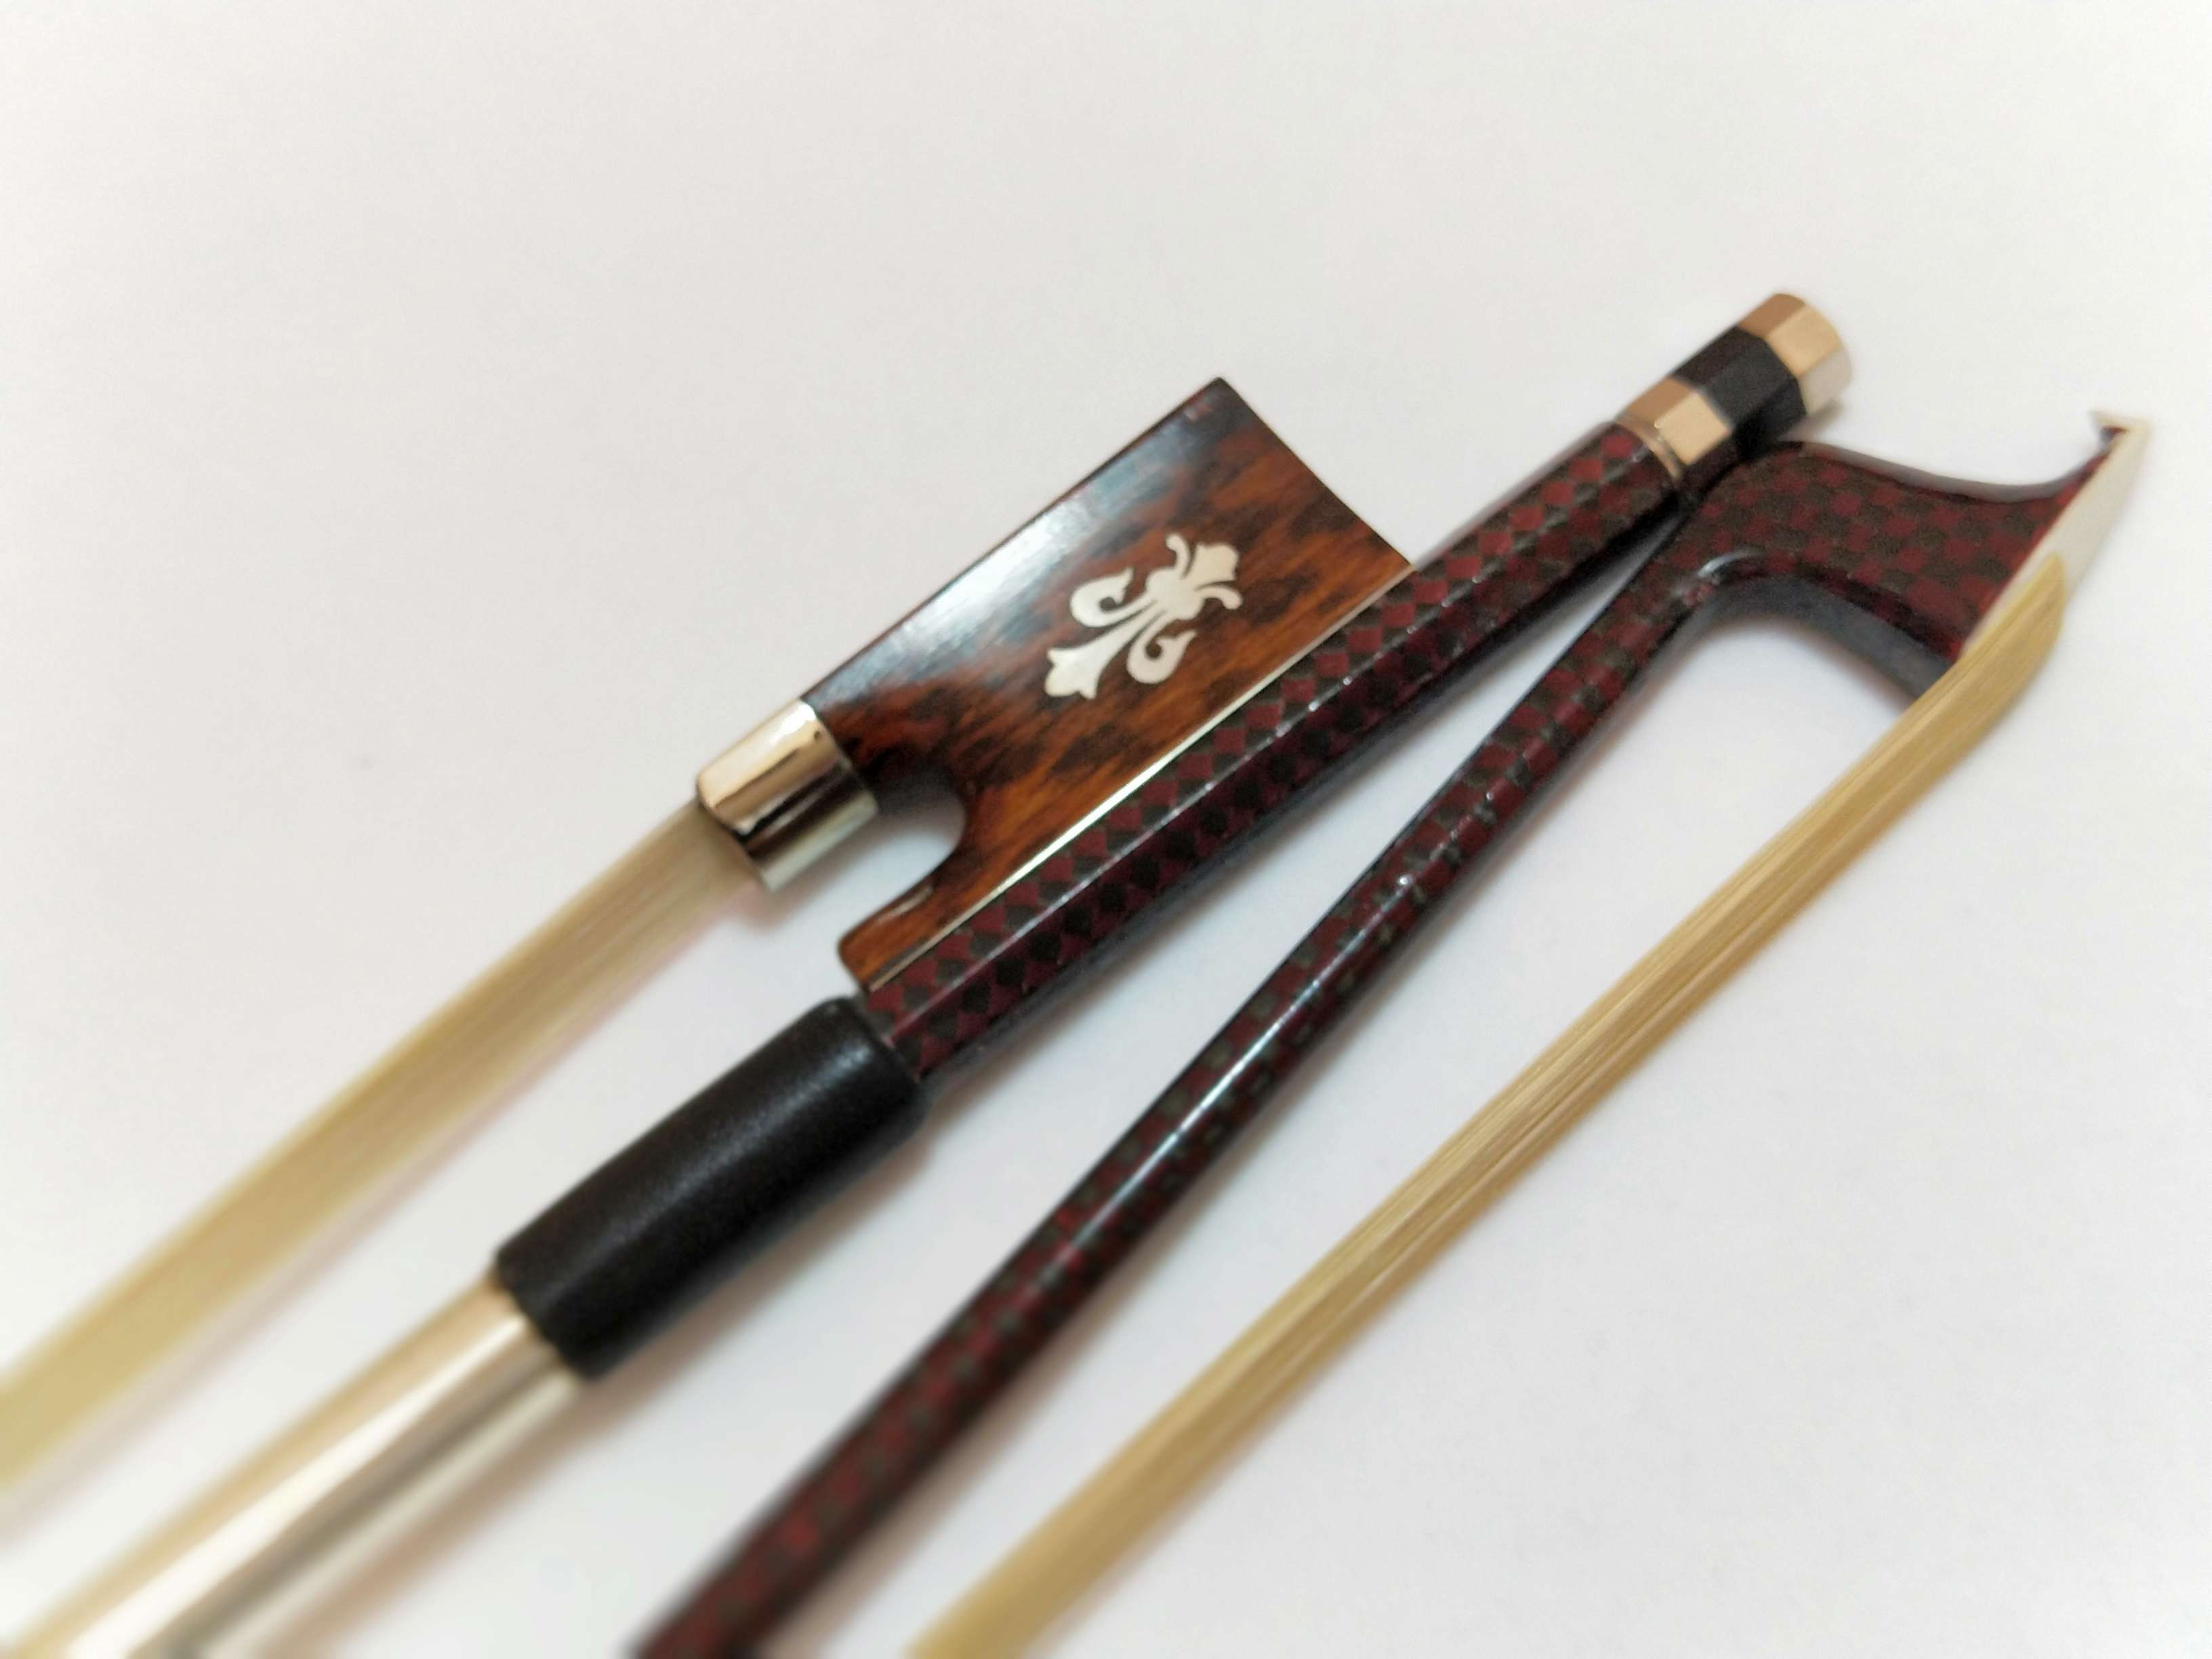 2 PCs NEW Type Carbon Fiber Violin Bow 4 4 Snake Wood Frog Inlay with Flower